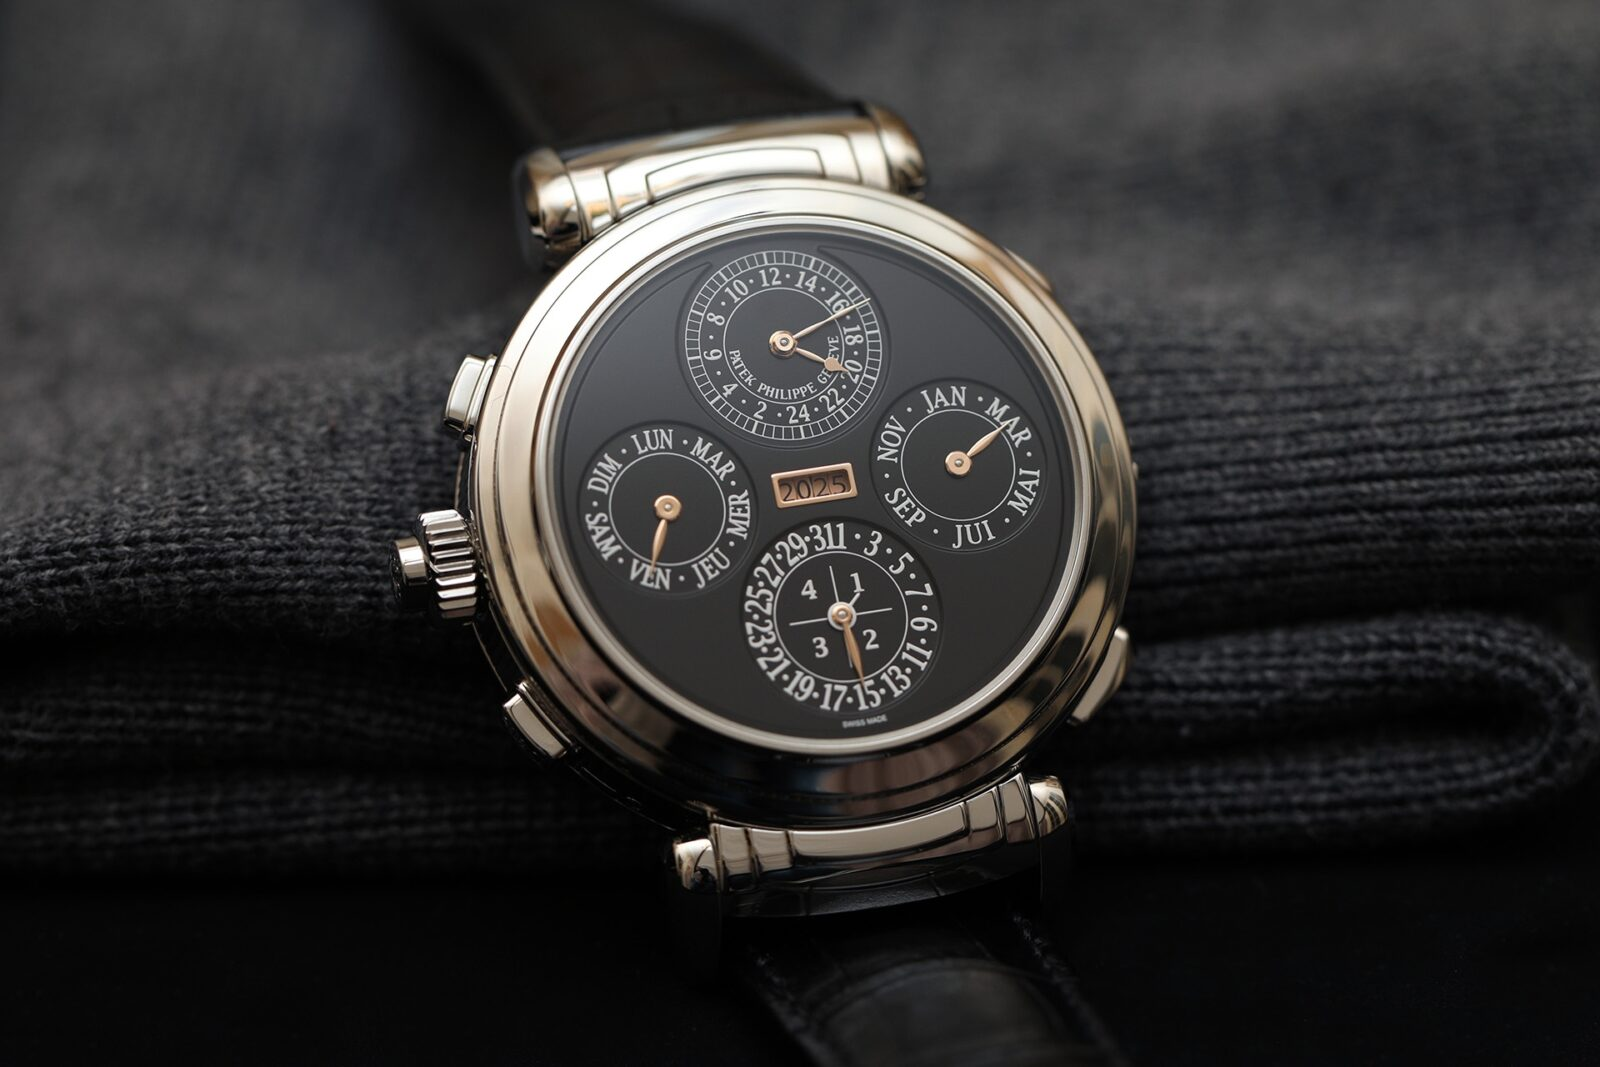 10 of The World's Most Expensive Watches